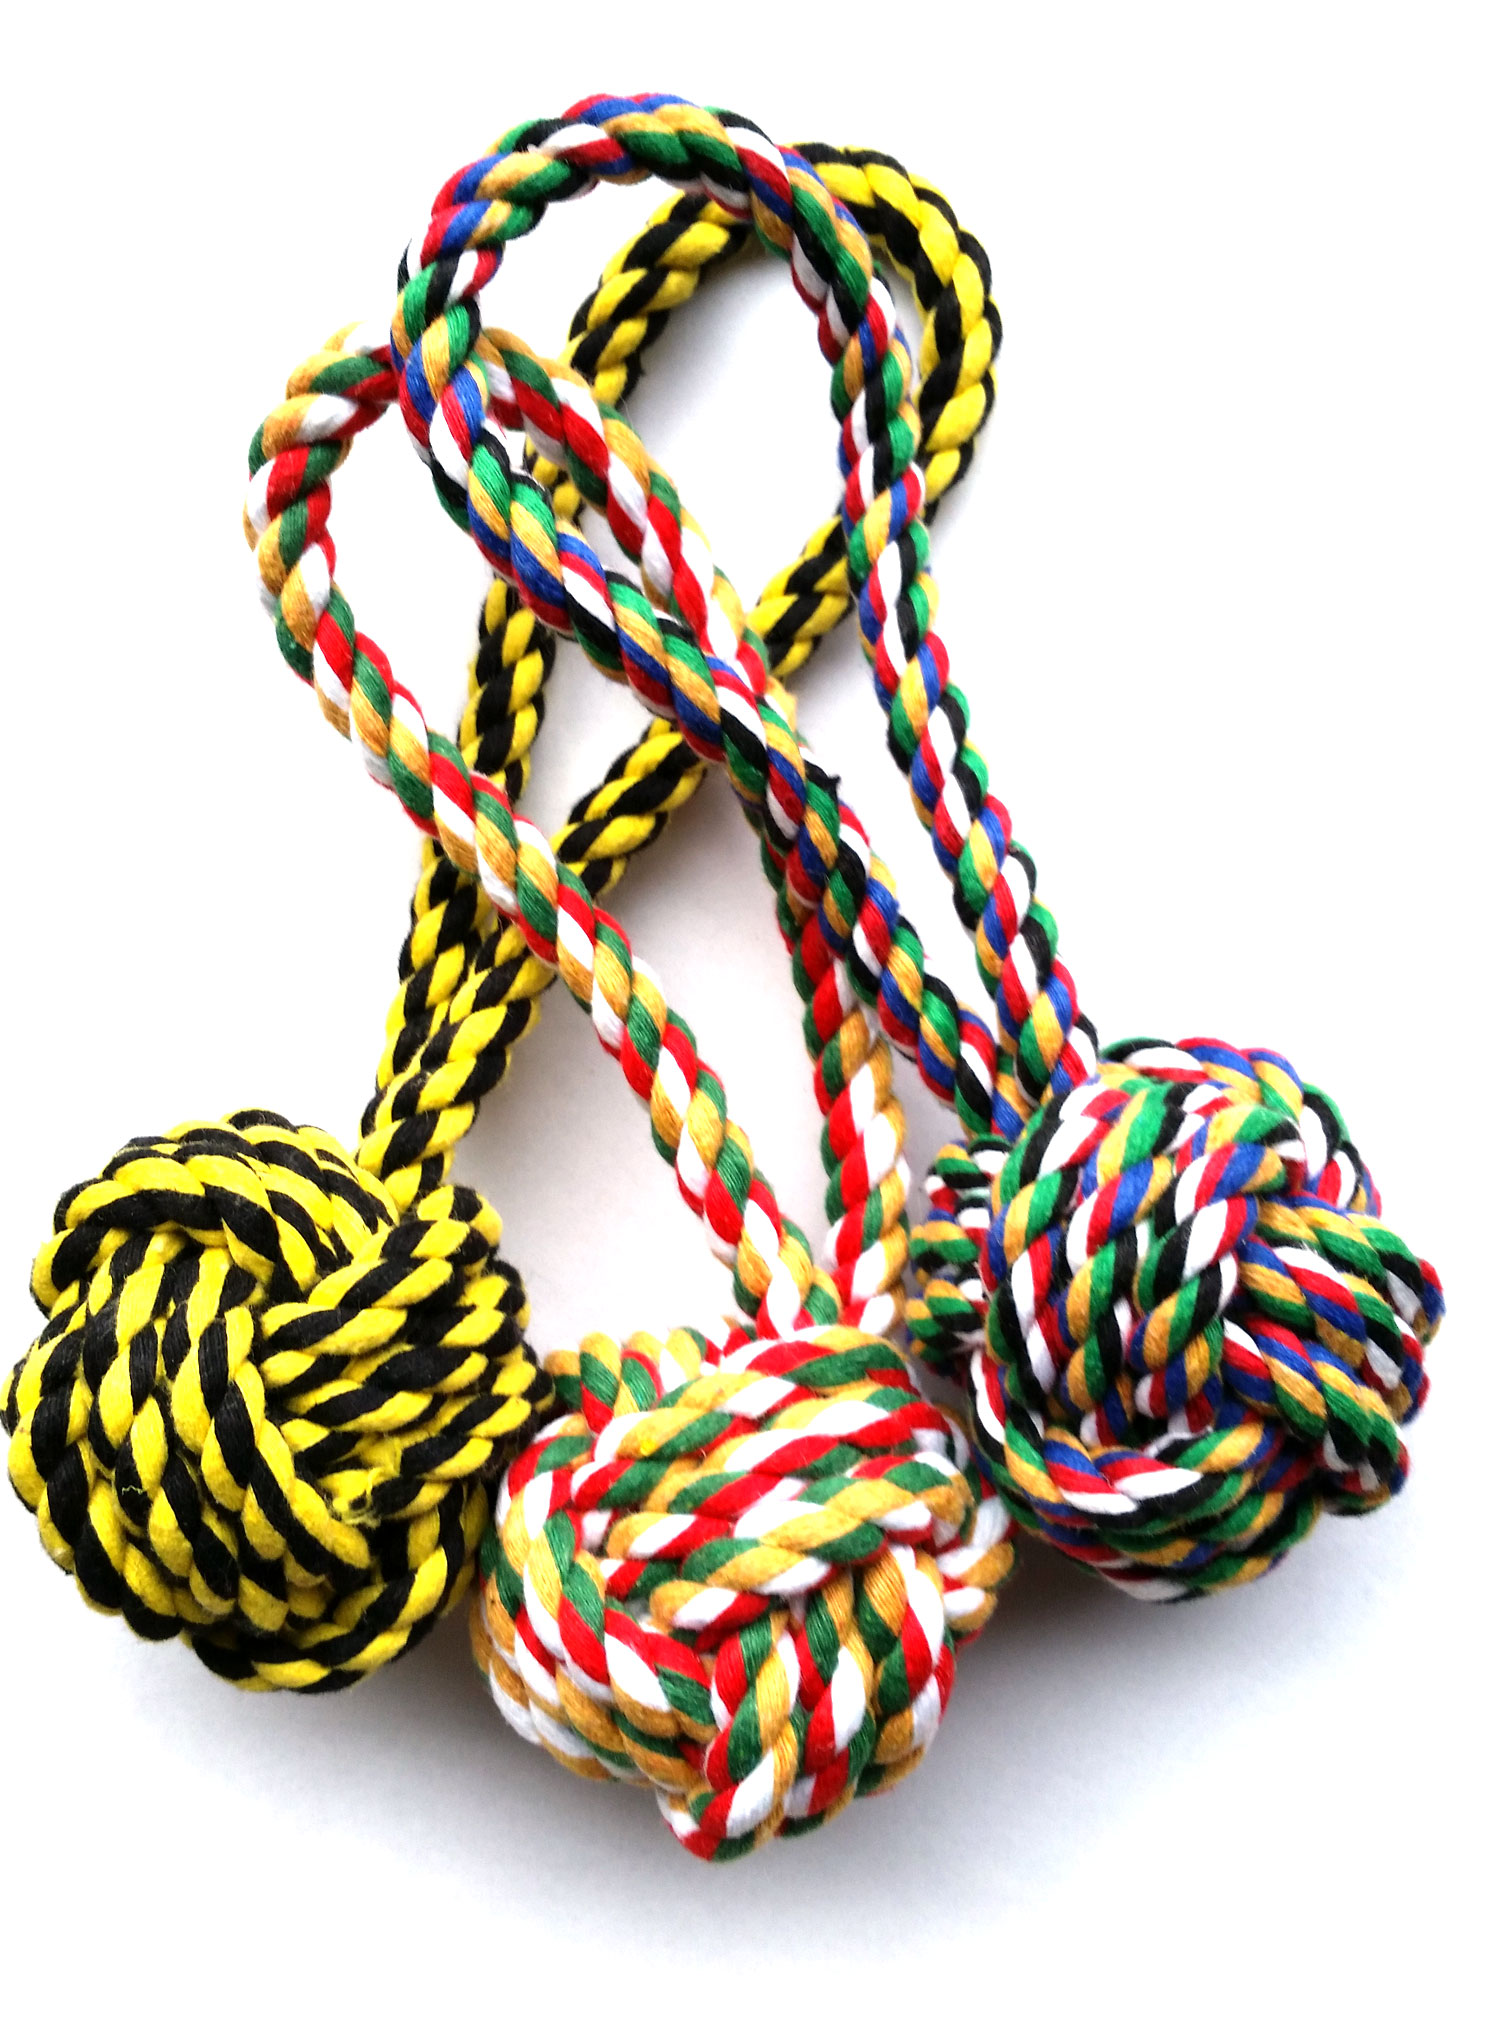 ball-rope-toy-colors.jpg